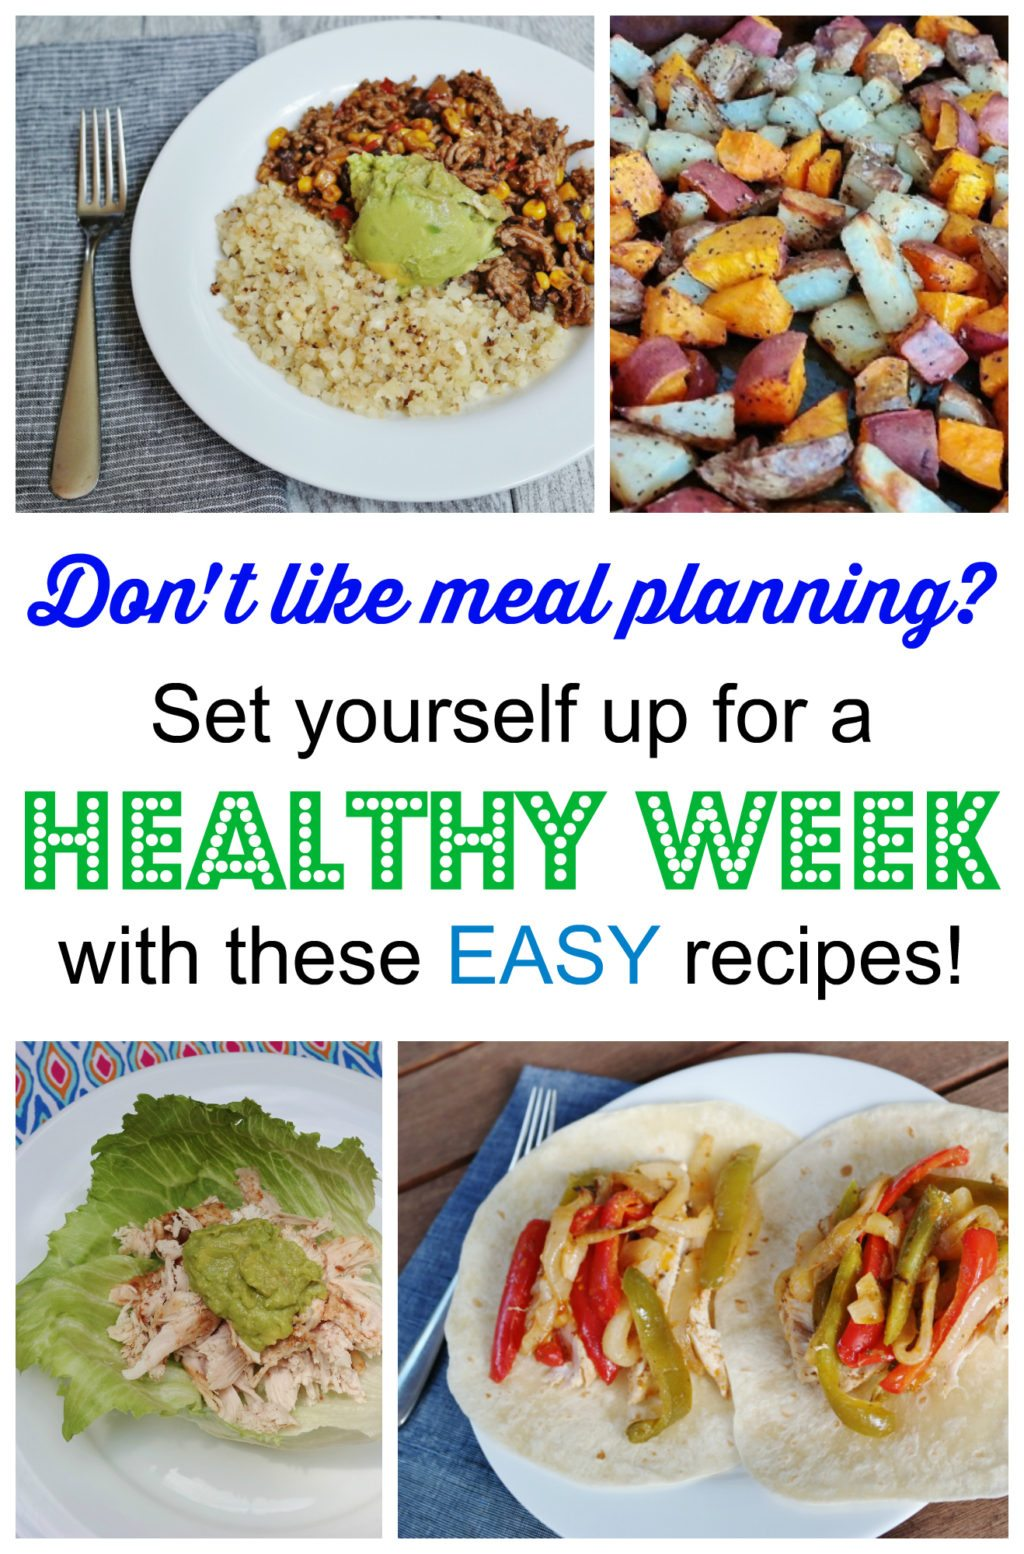 set yourself up for a healthy week with these easy recipes